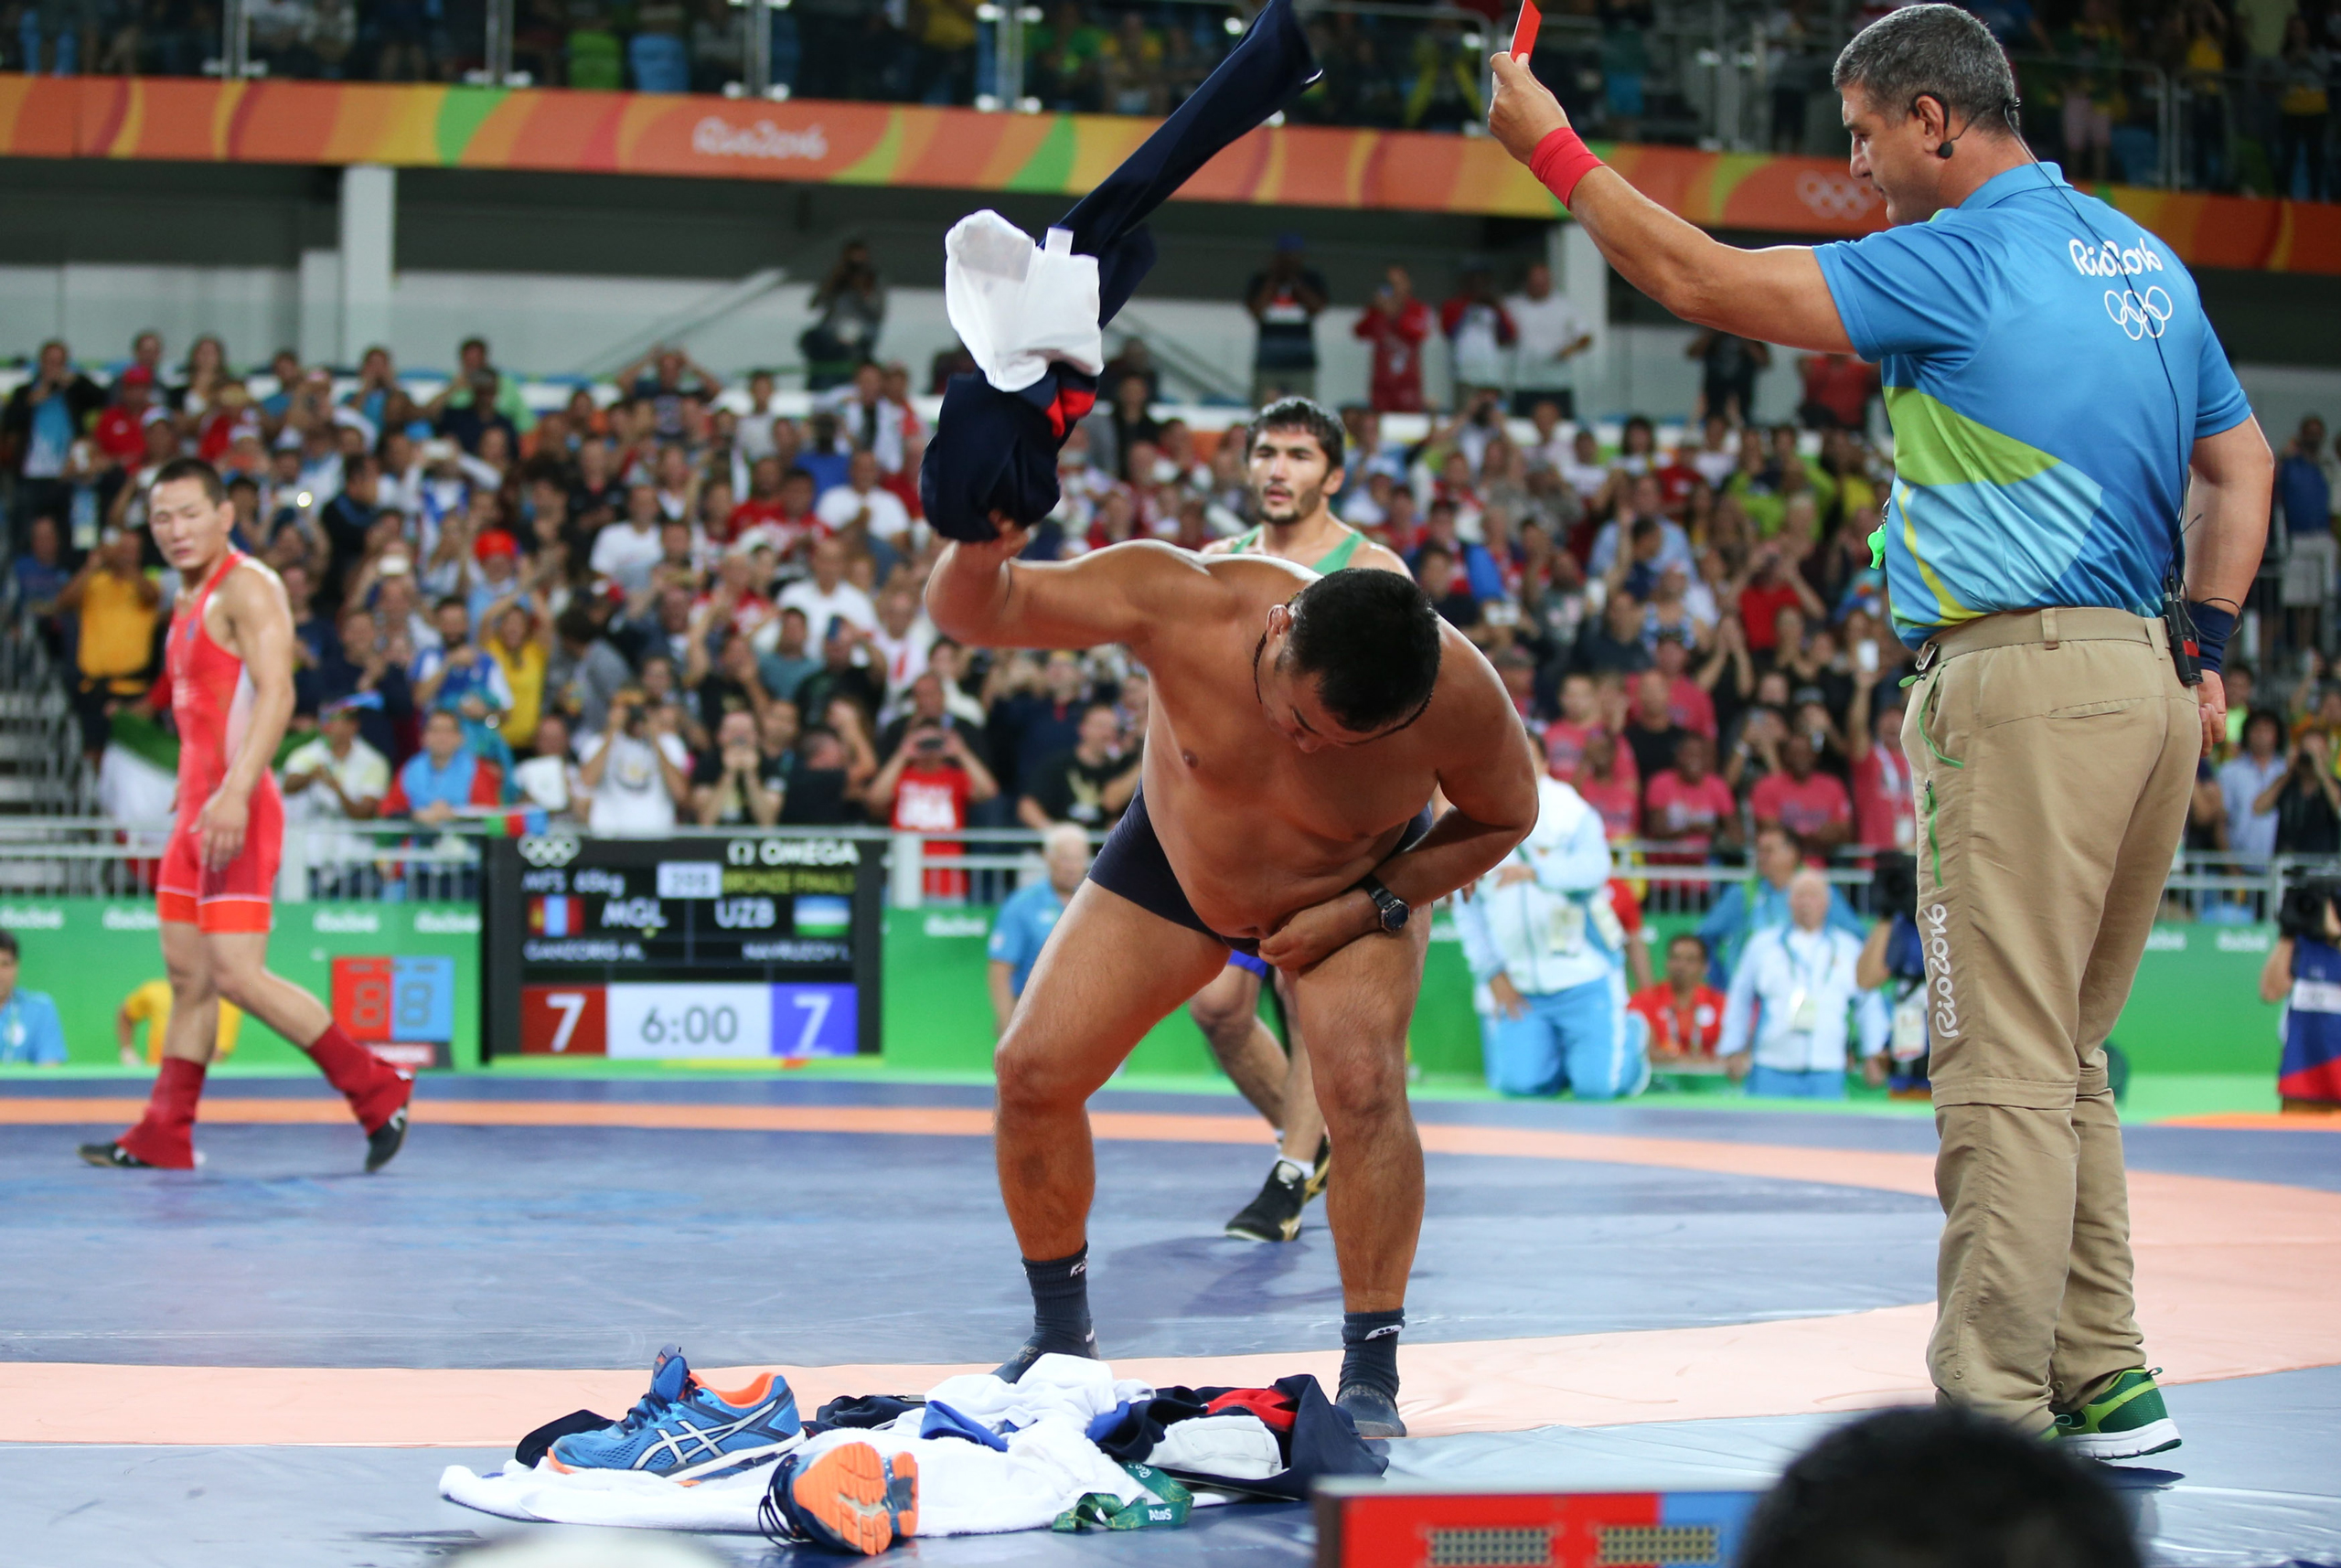 The coach of Mongolian wrestler Ganzorigiin Mandakhnaran takes off his clothes as he protests after the men's freestyle 65-kg bronze-medal match against Ikhtiyor Navruzov of Uzbekistan at the Olympic Games on Aug. 21, 2016